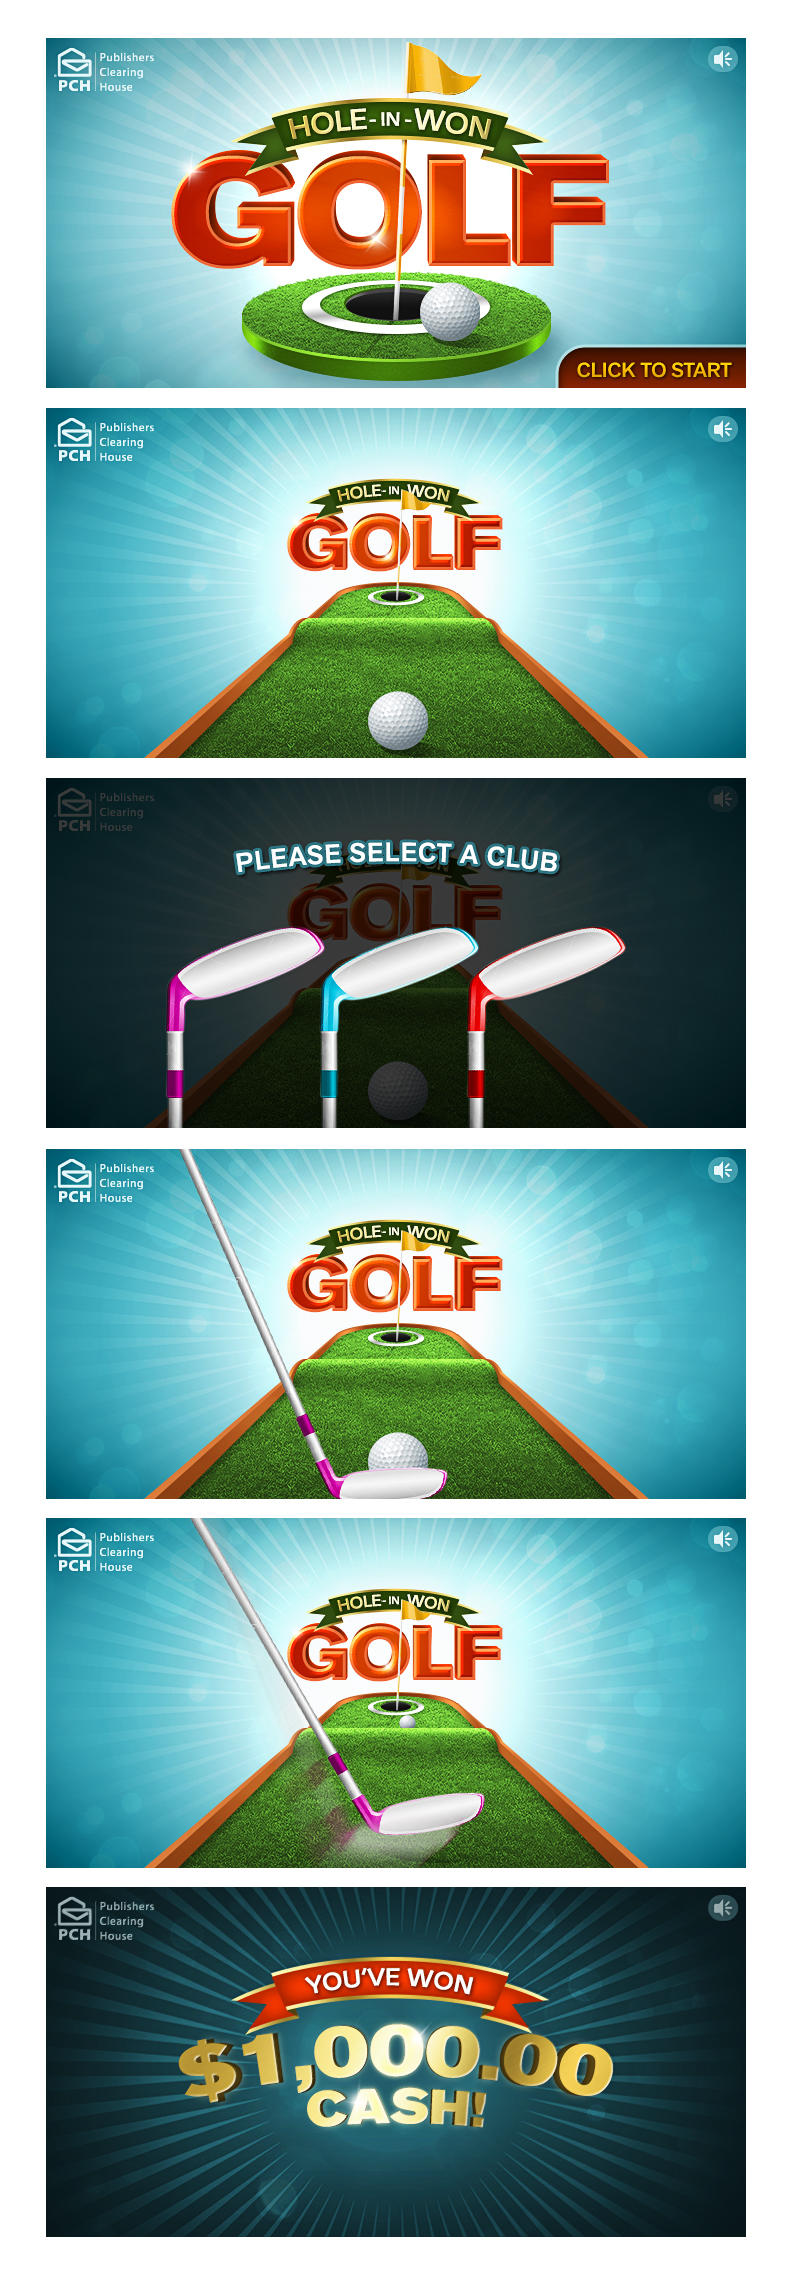 Instant Win Games-Hole-in-Won Golf on Behance